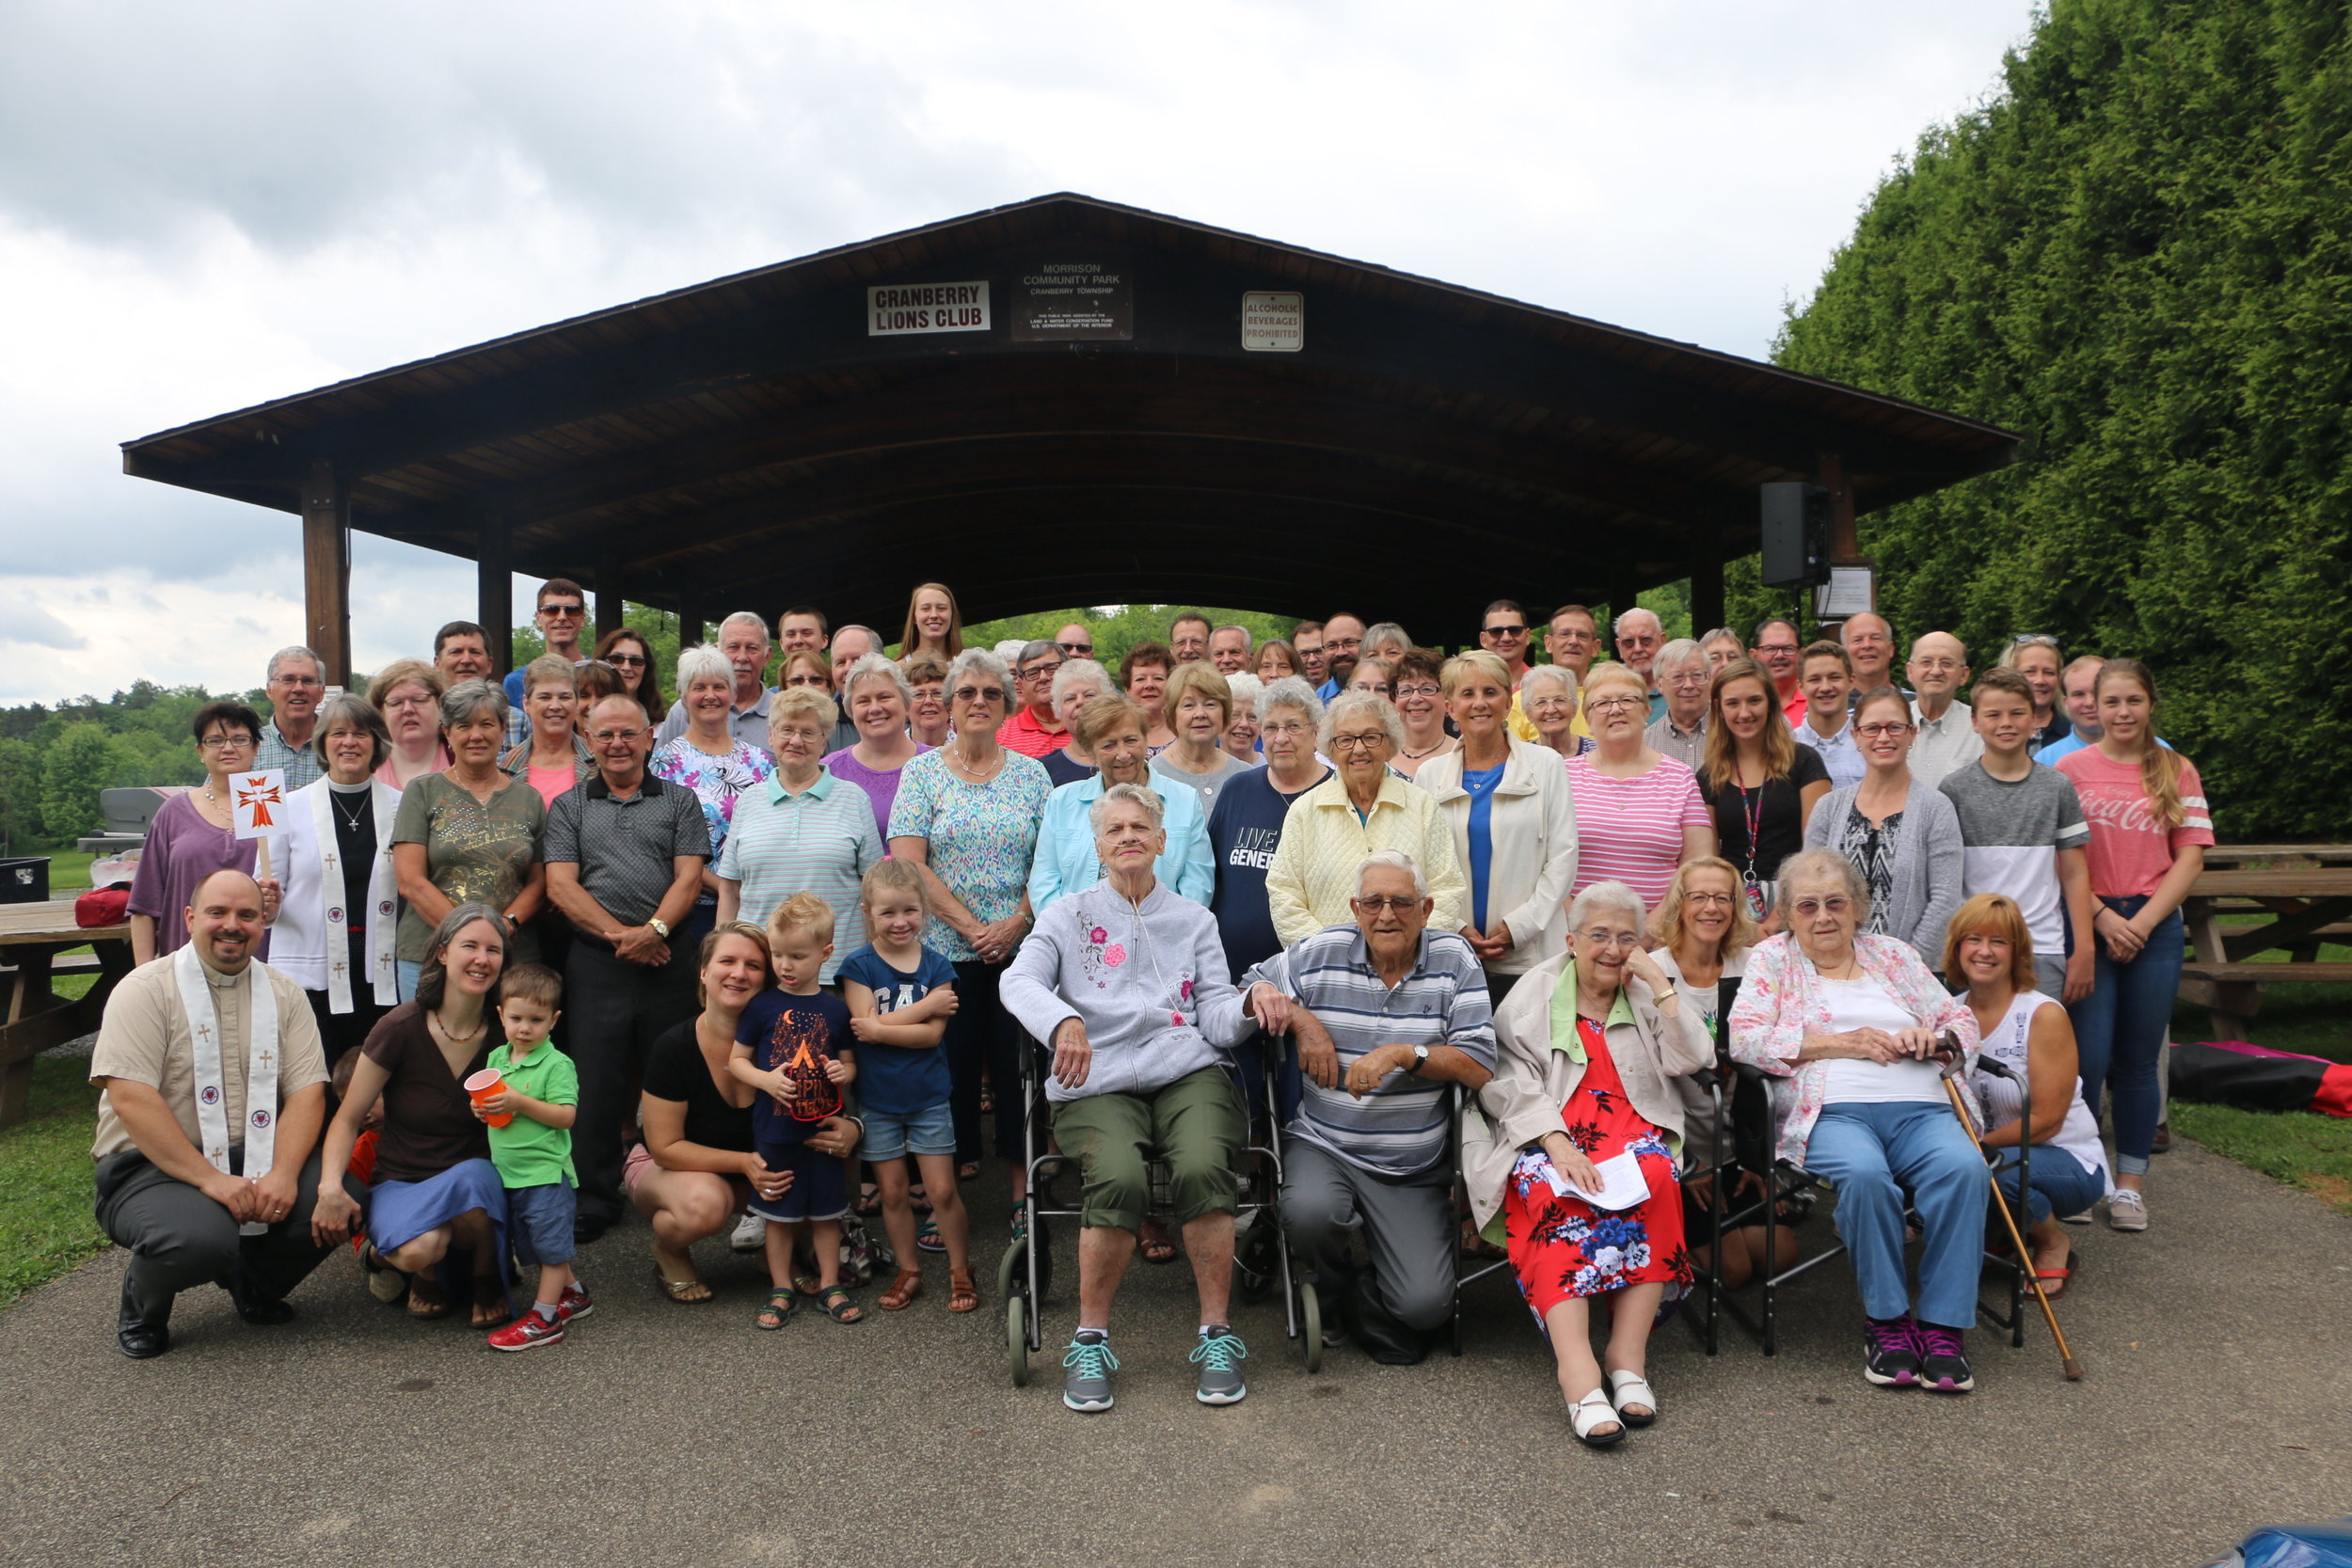 2018 Shared Ministry picnic and worship - Photo Sam McDowell